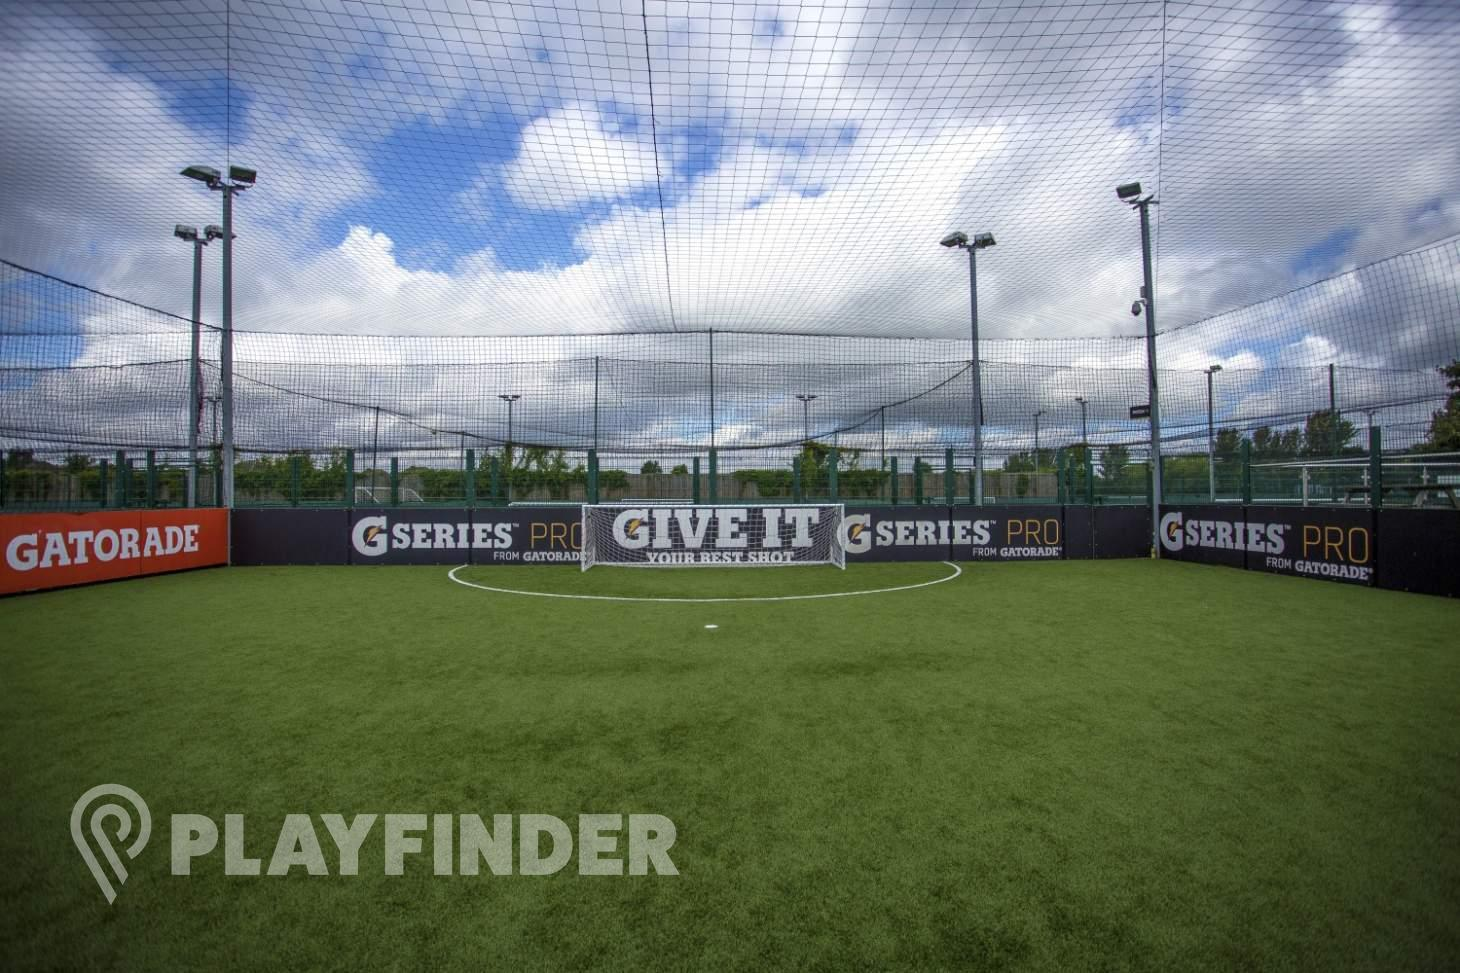 PlayFootball Romford 5 a side | 3G Astroturf football pitch